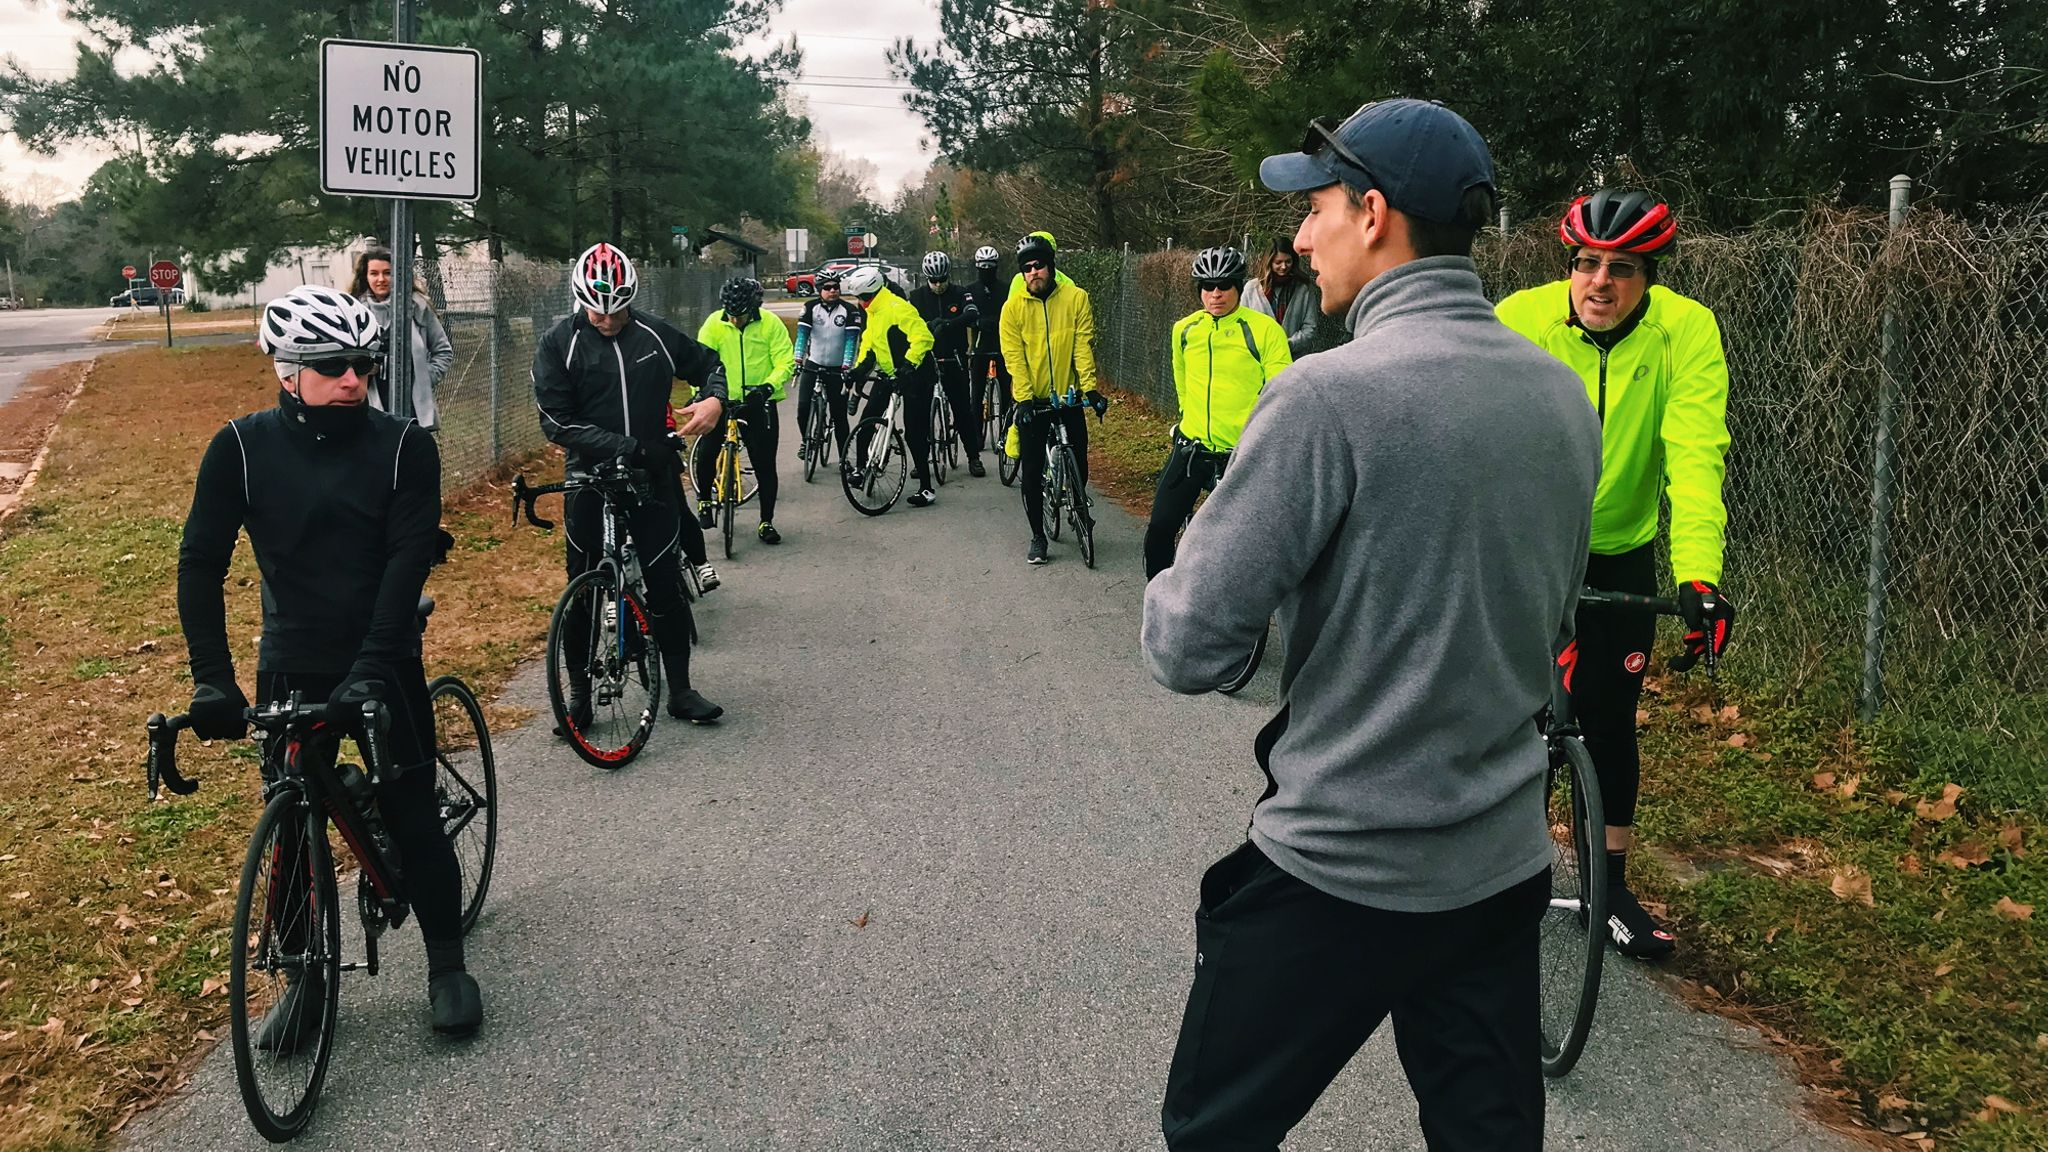 Fit For Hope Co-founder, Jake Vermillion, detailing the route before riders set-out for a day of cold-weather riding.